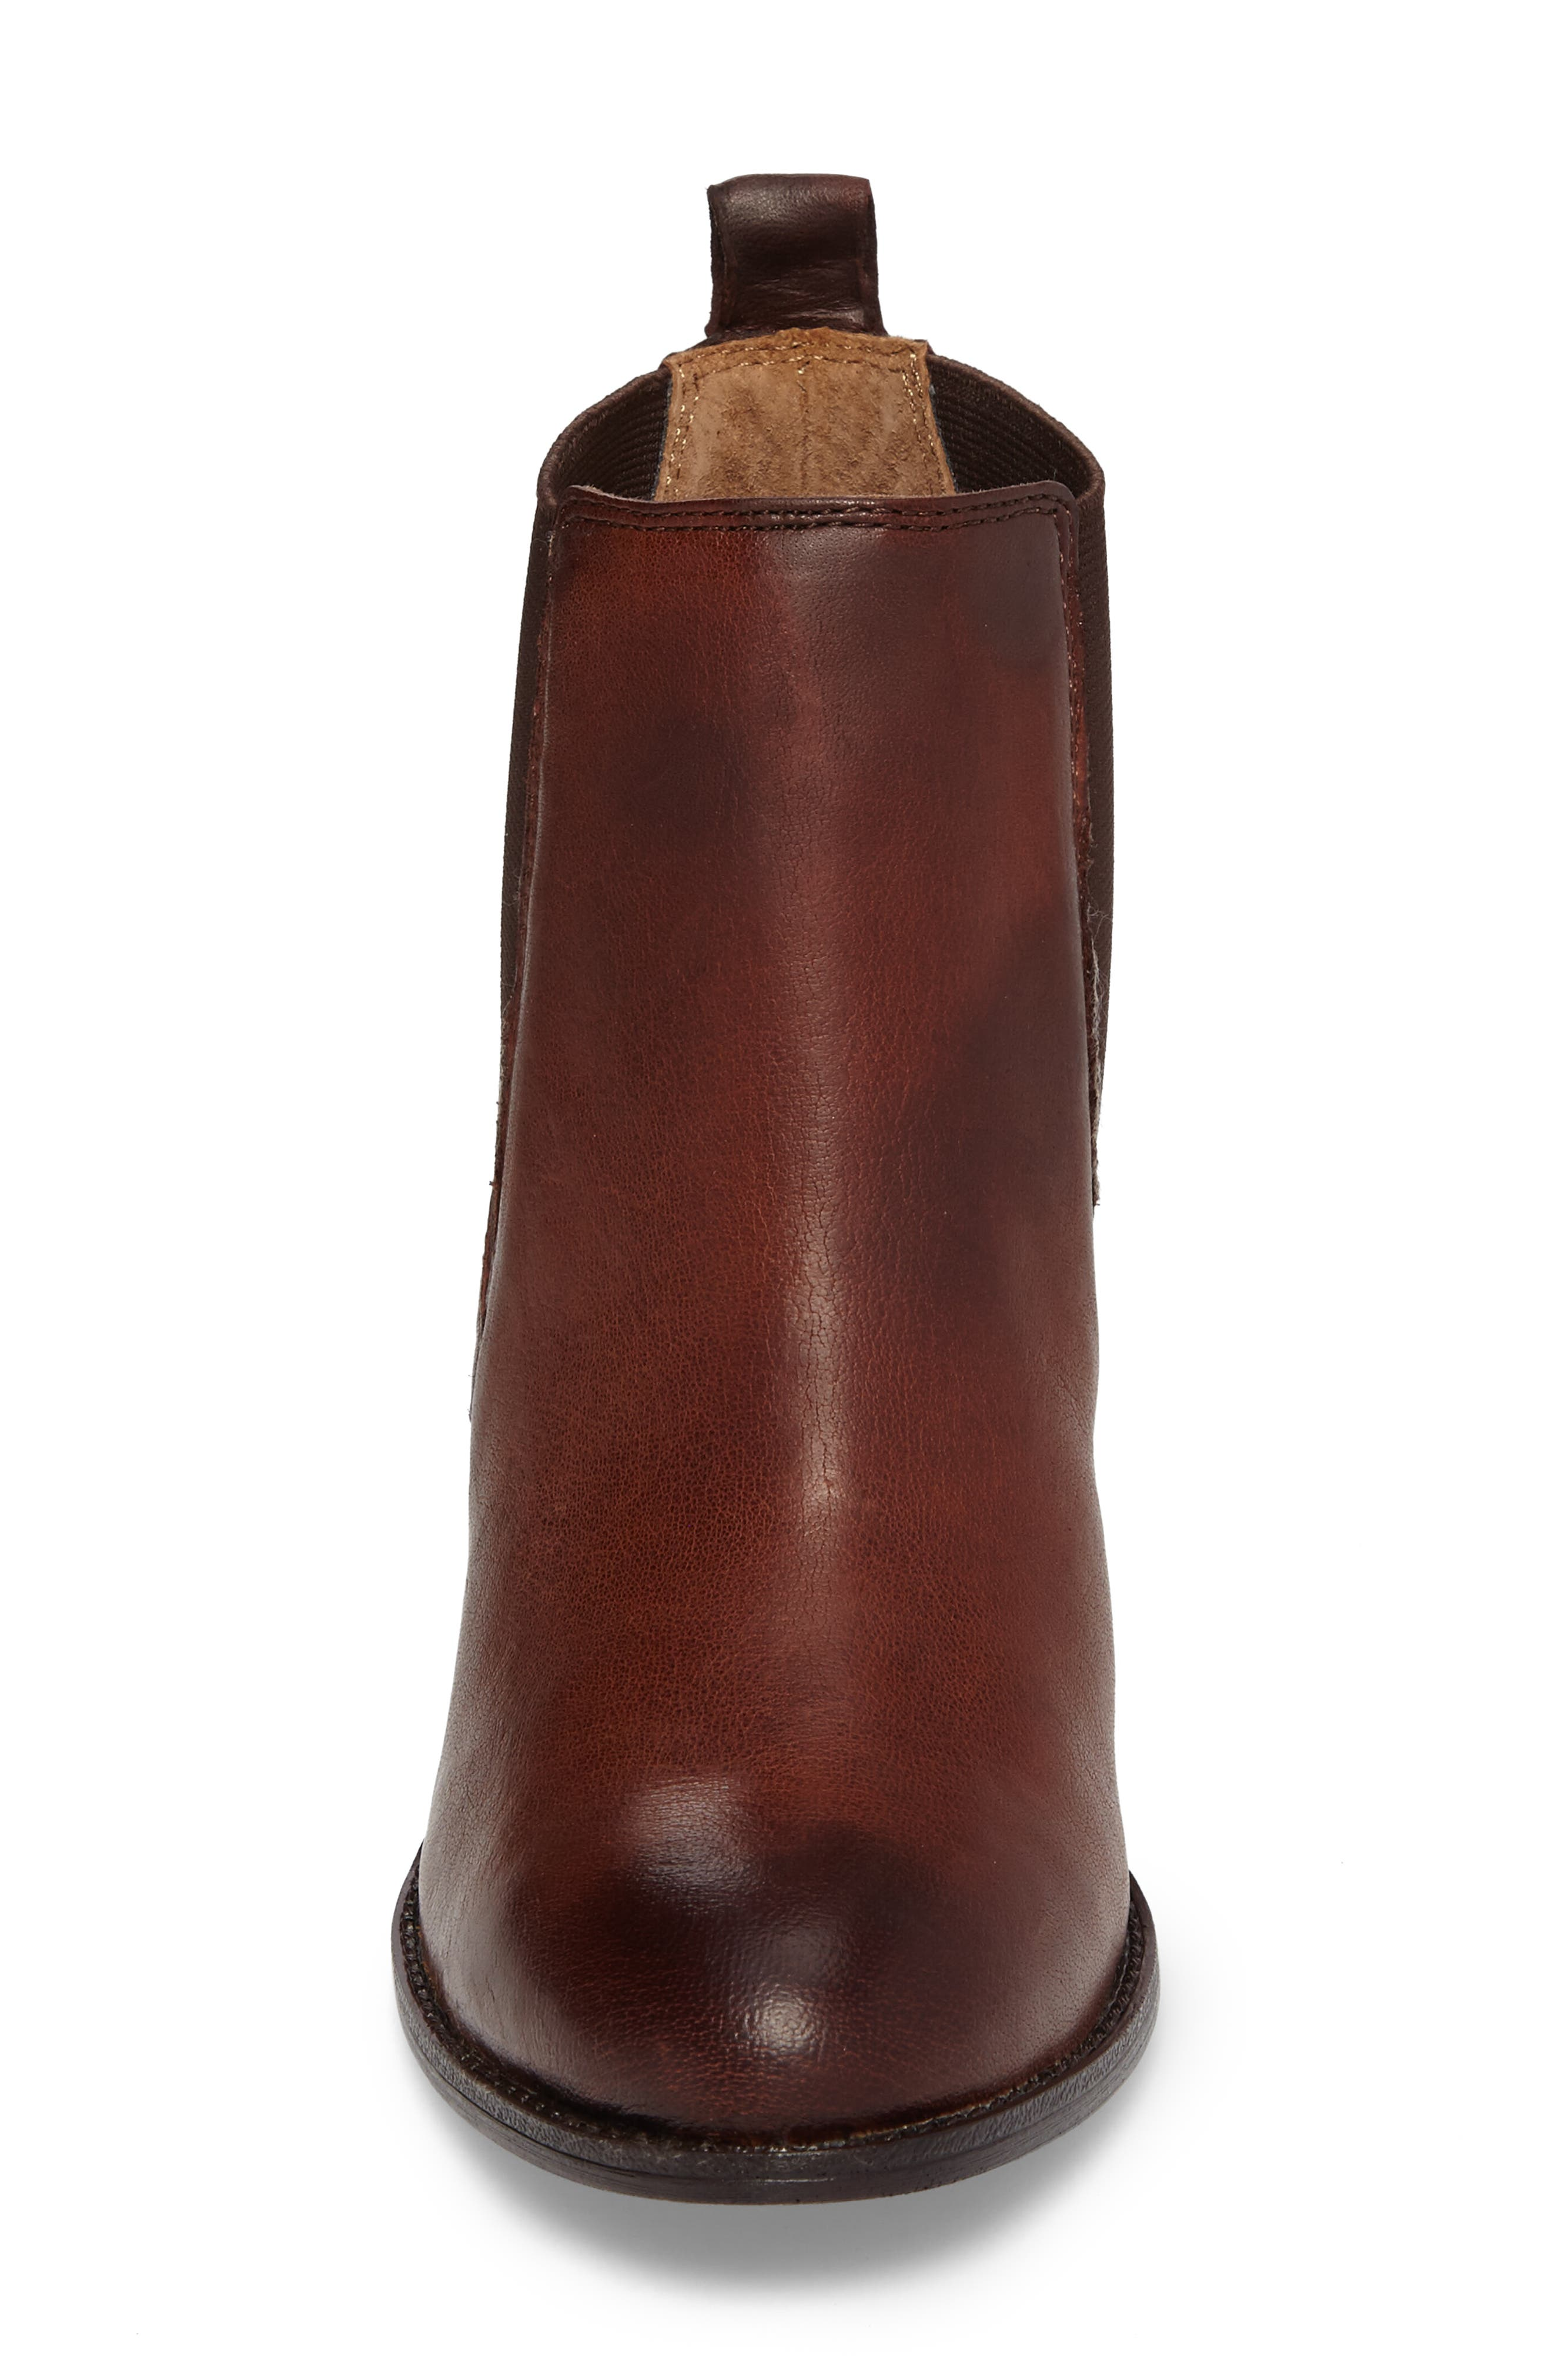 Welling Bootie,                             Alternate thumbnail 4, color,                             Caffe Leather